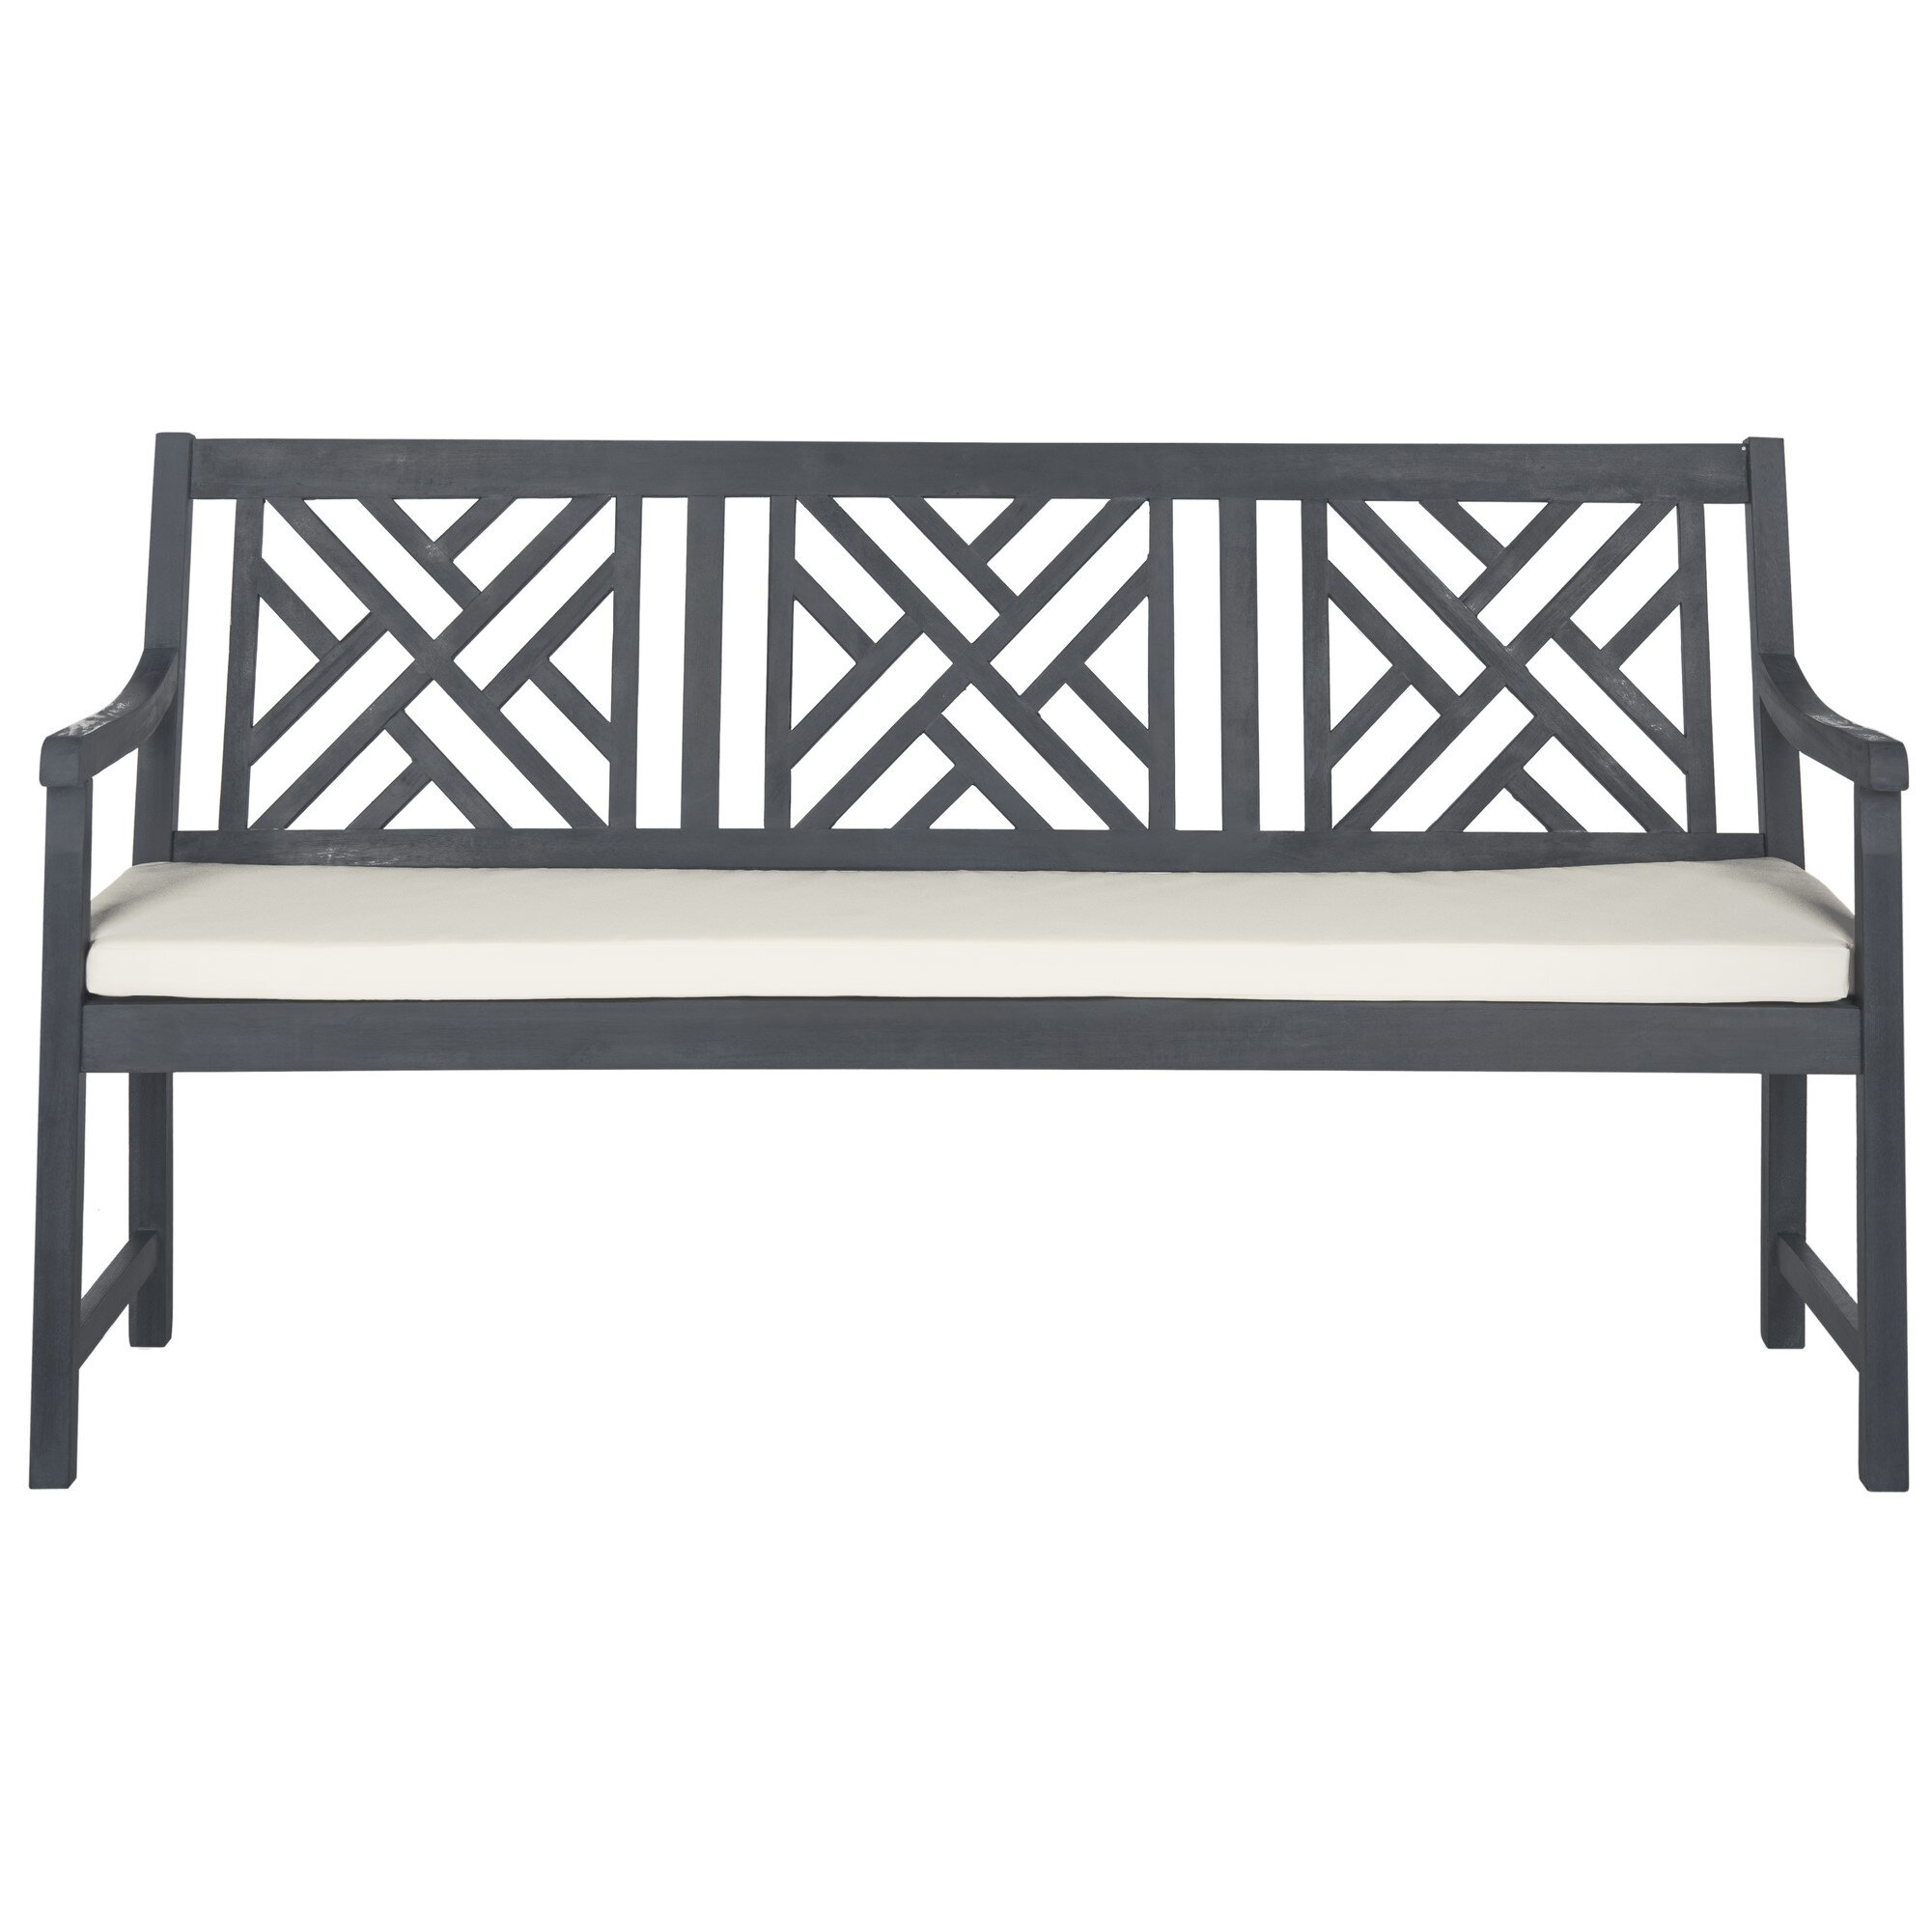 With Arms Outdoor Benches You'Ll Love In 2020 | Wayfair Regarding Krystal Ergonomic Metal Garden Benches (View 6 of 25)